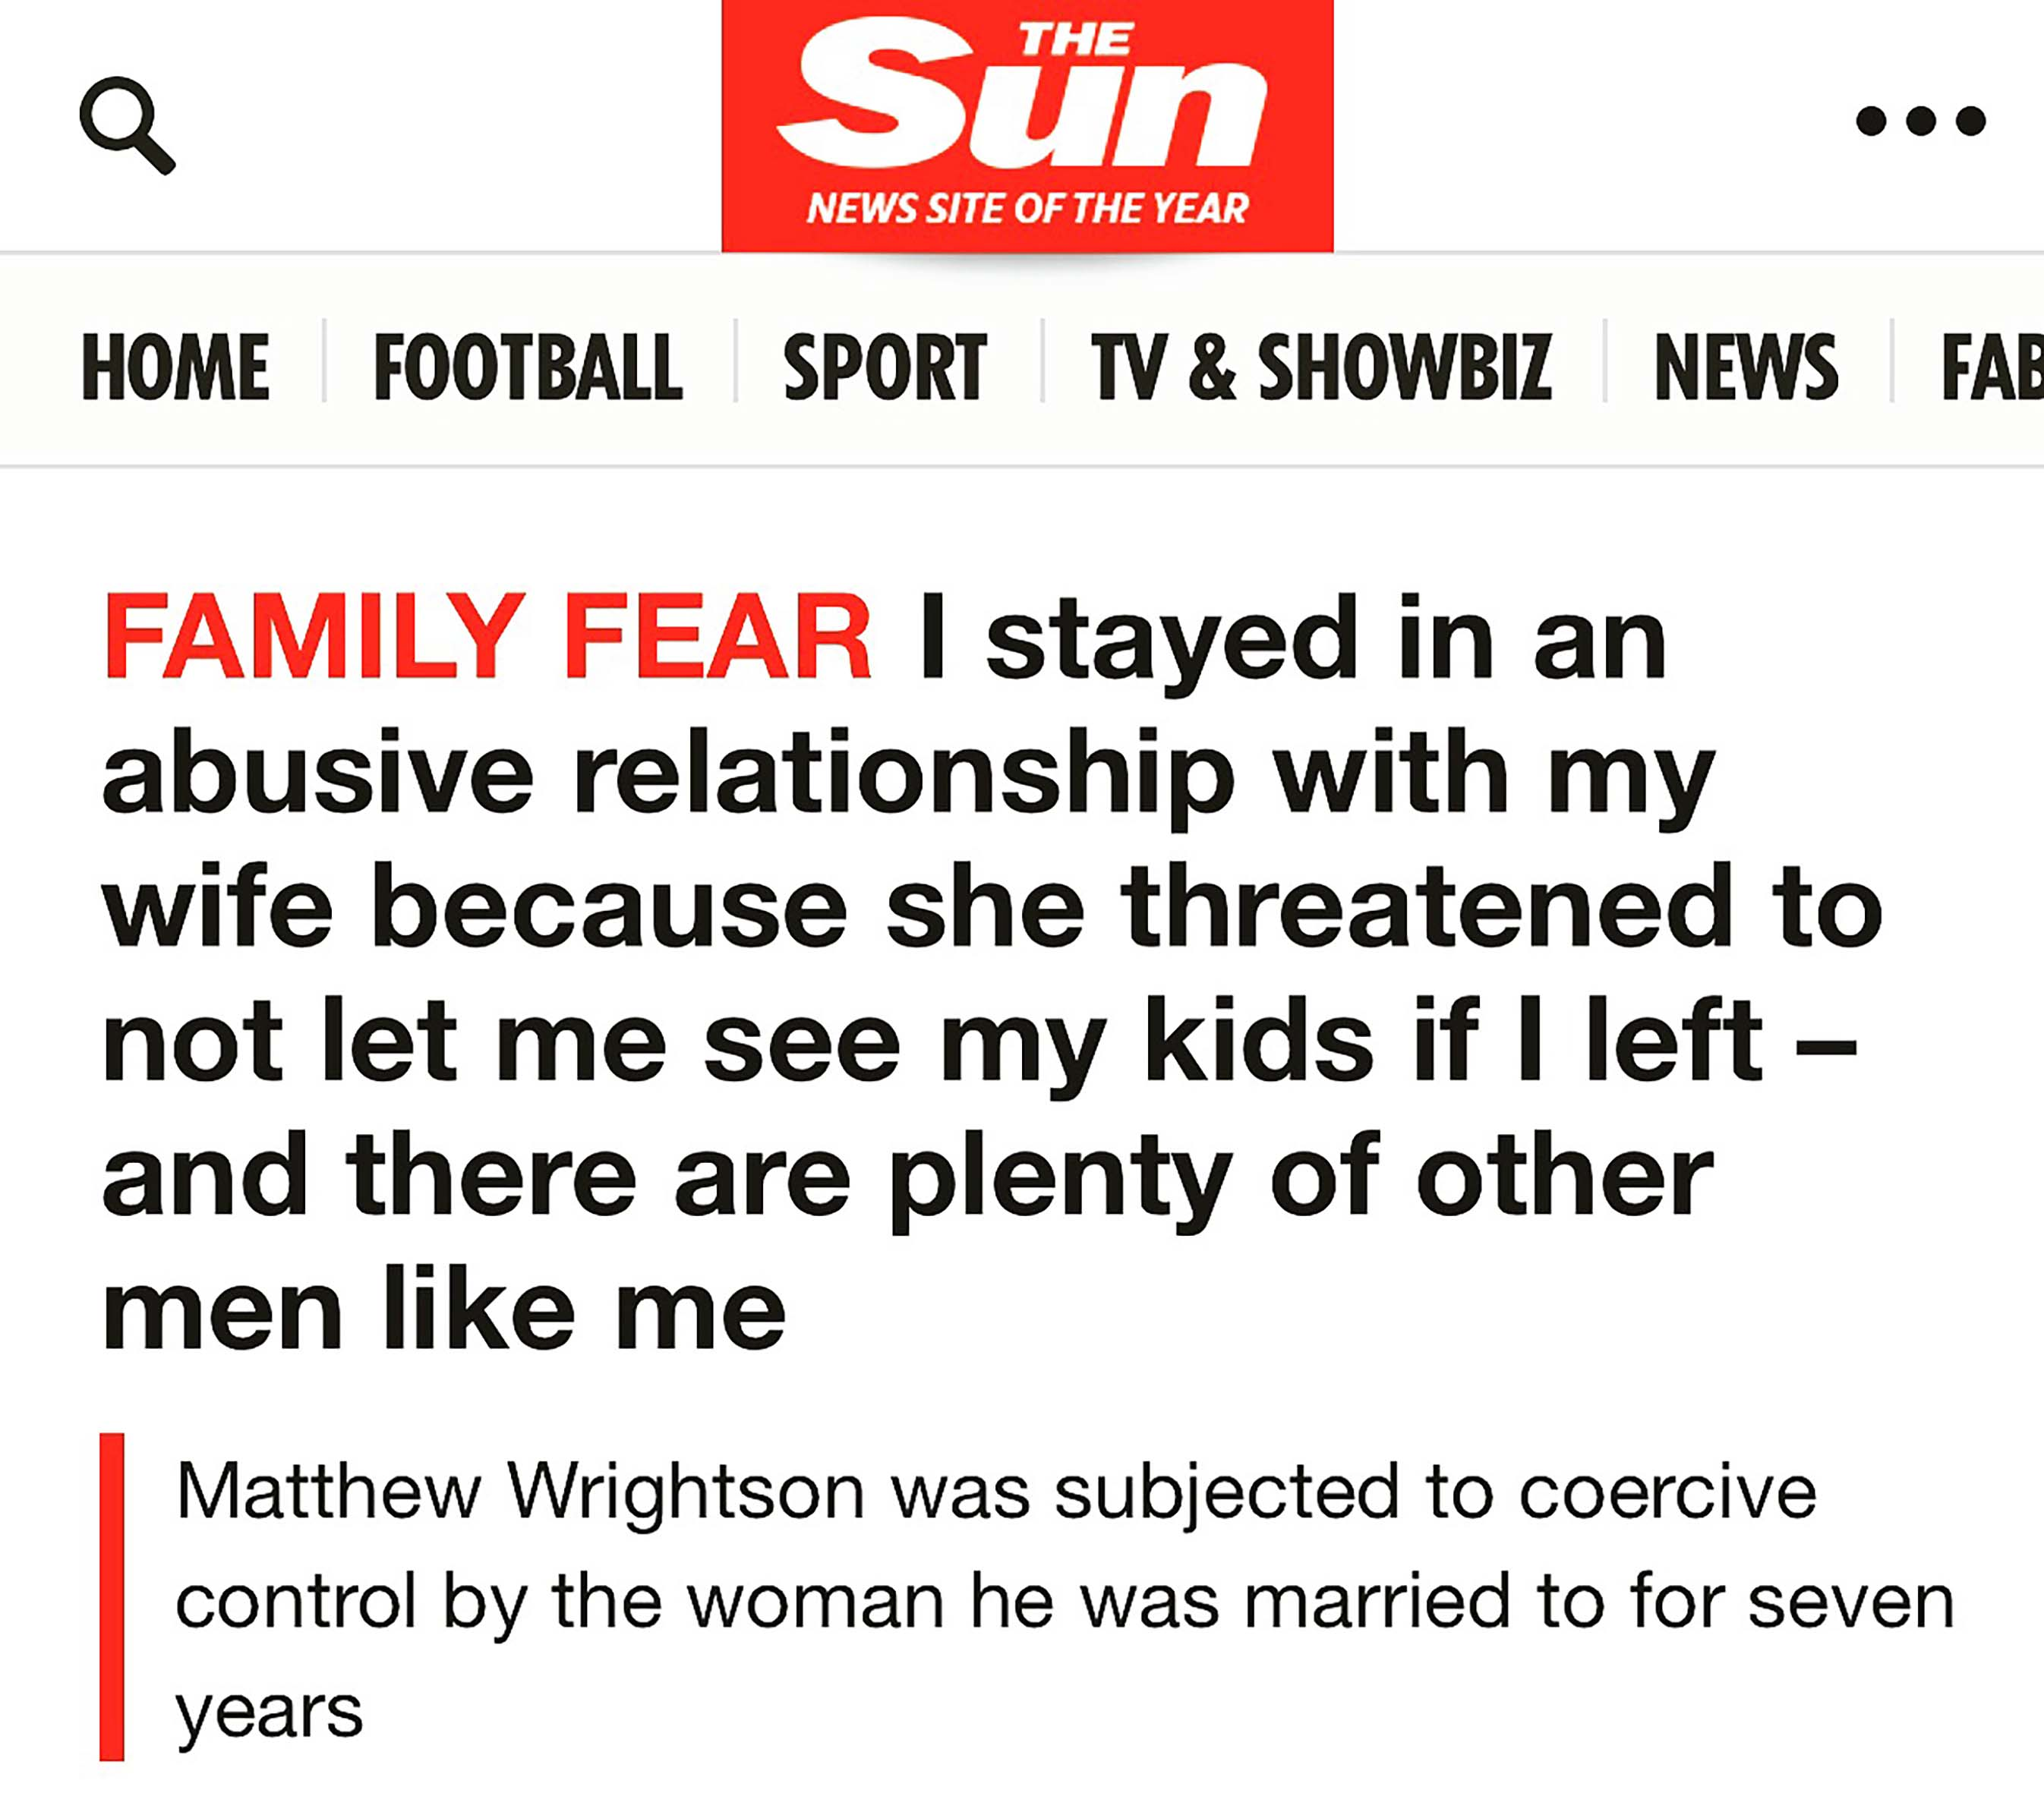 The Sun: The forgotten fathers who are victims of coercive